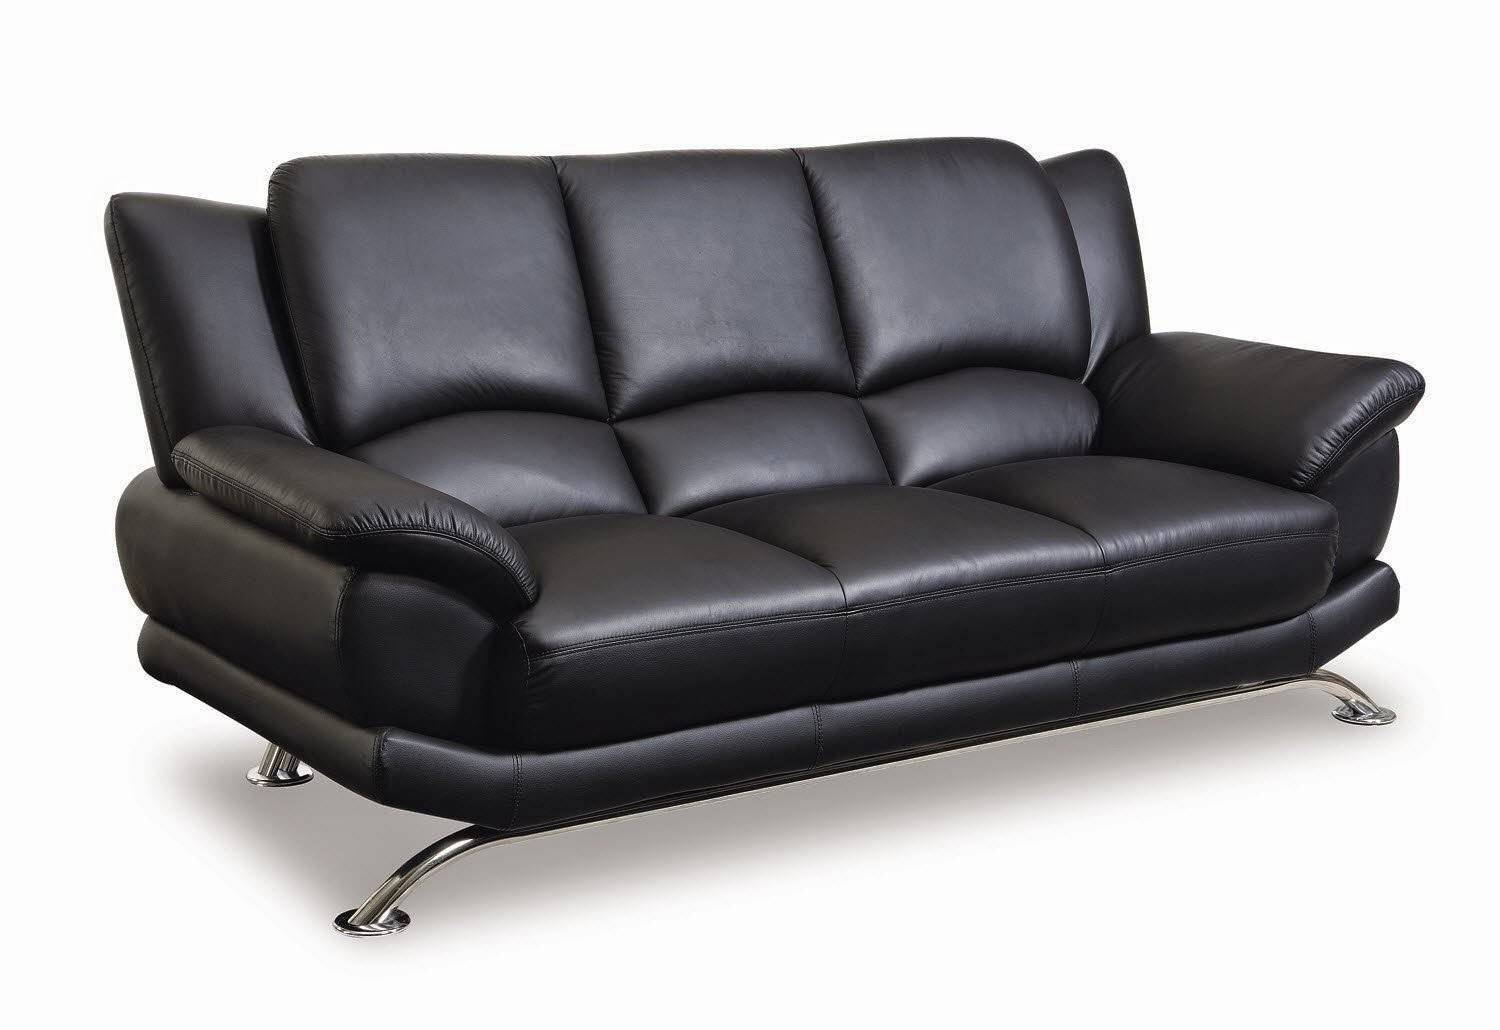 Black Leather Sofa for Contemporary Black Leather Sofas (Image 5 of 30)